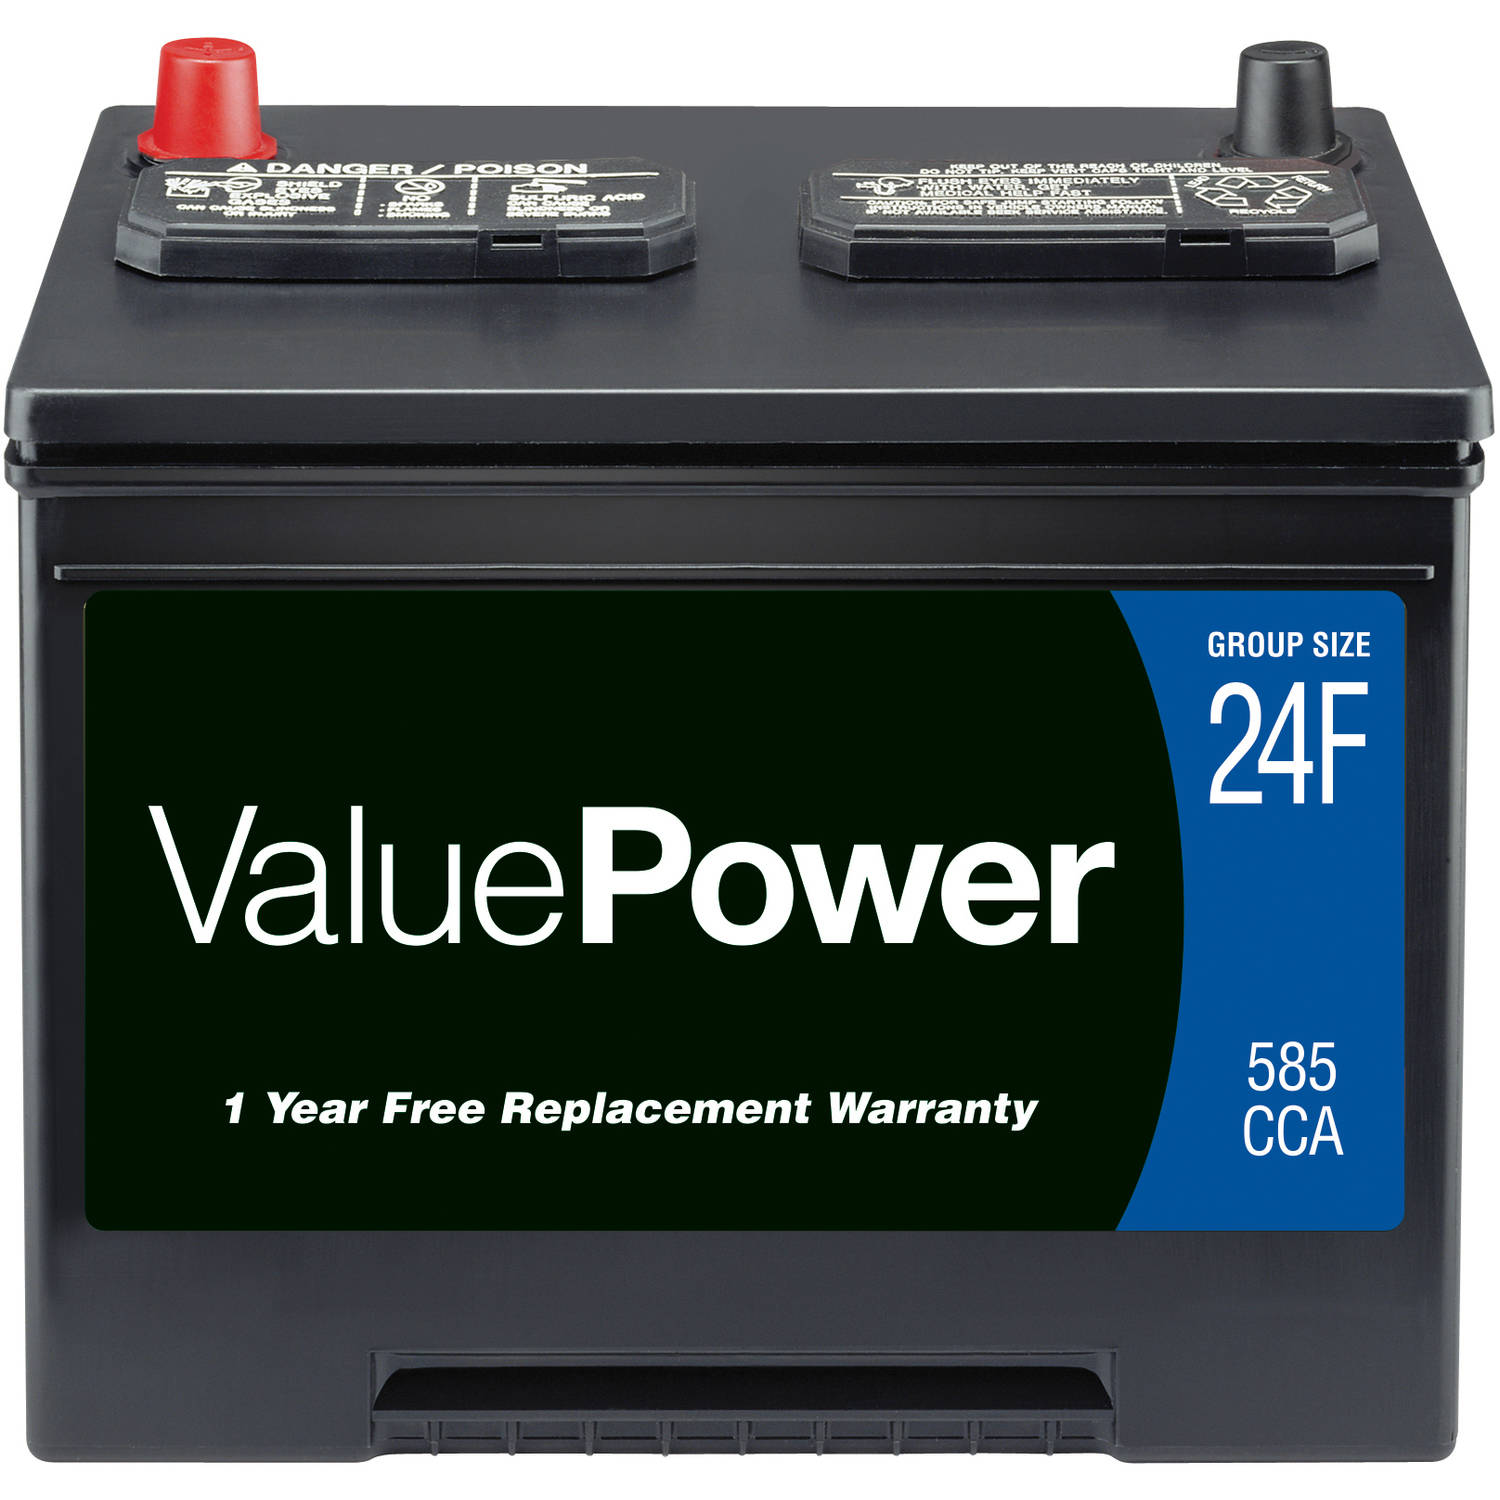 Walmart's automotive department offers a variety of car battery options in different sizes and voltages in addition to useful battery-related accessories such as portable battery chargers, jumper cables and charging system monitors.